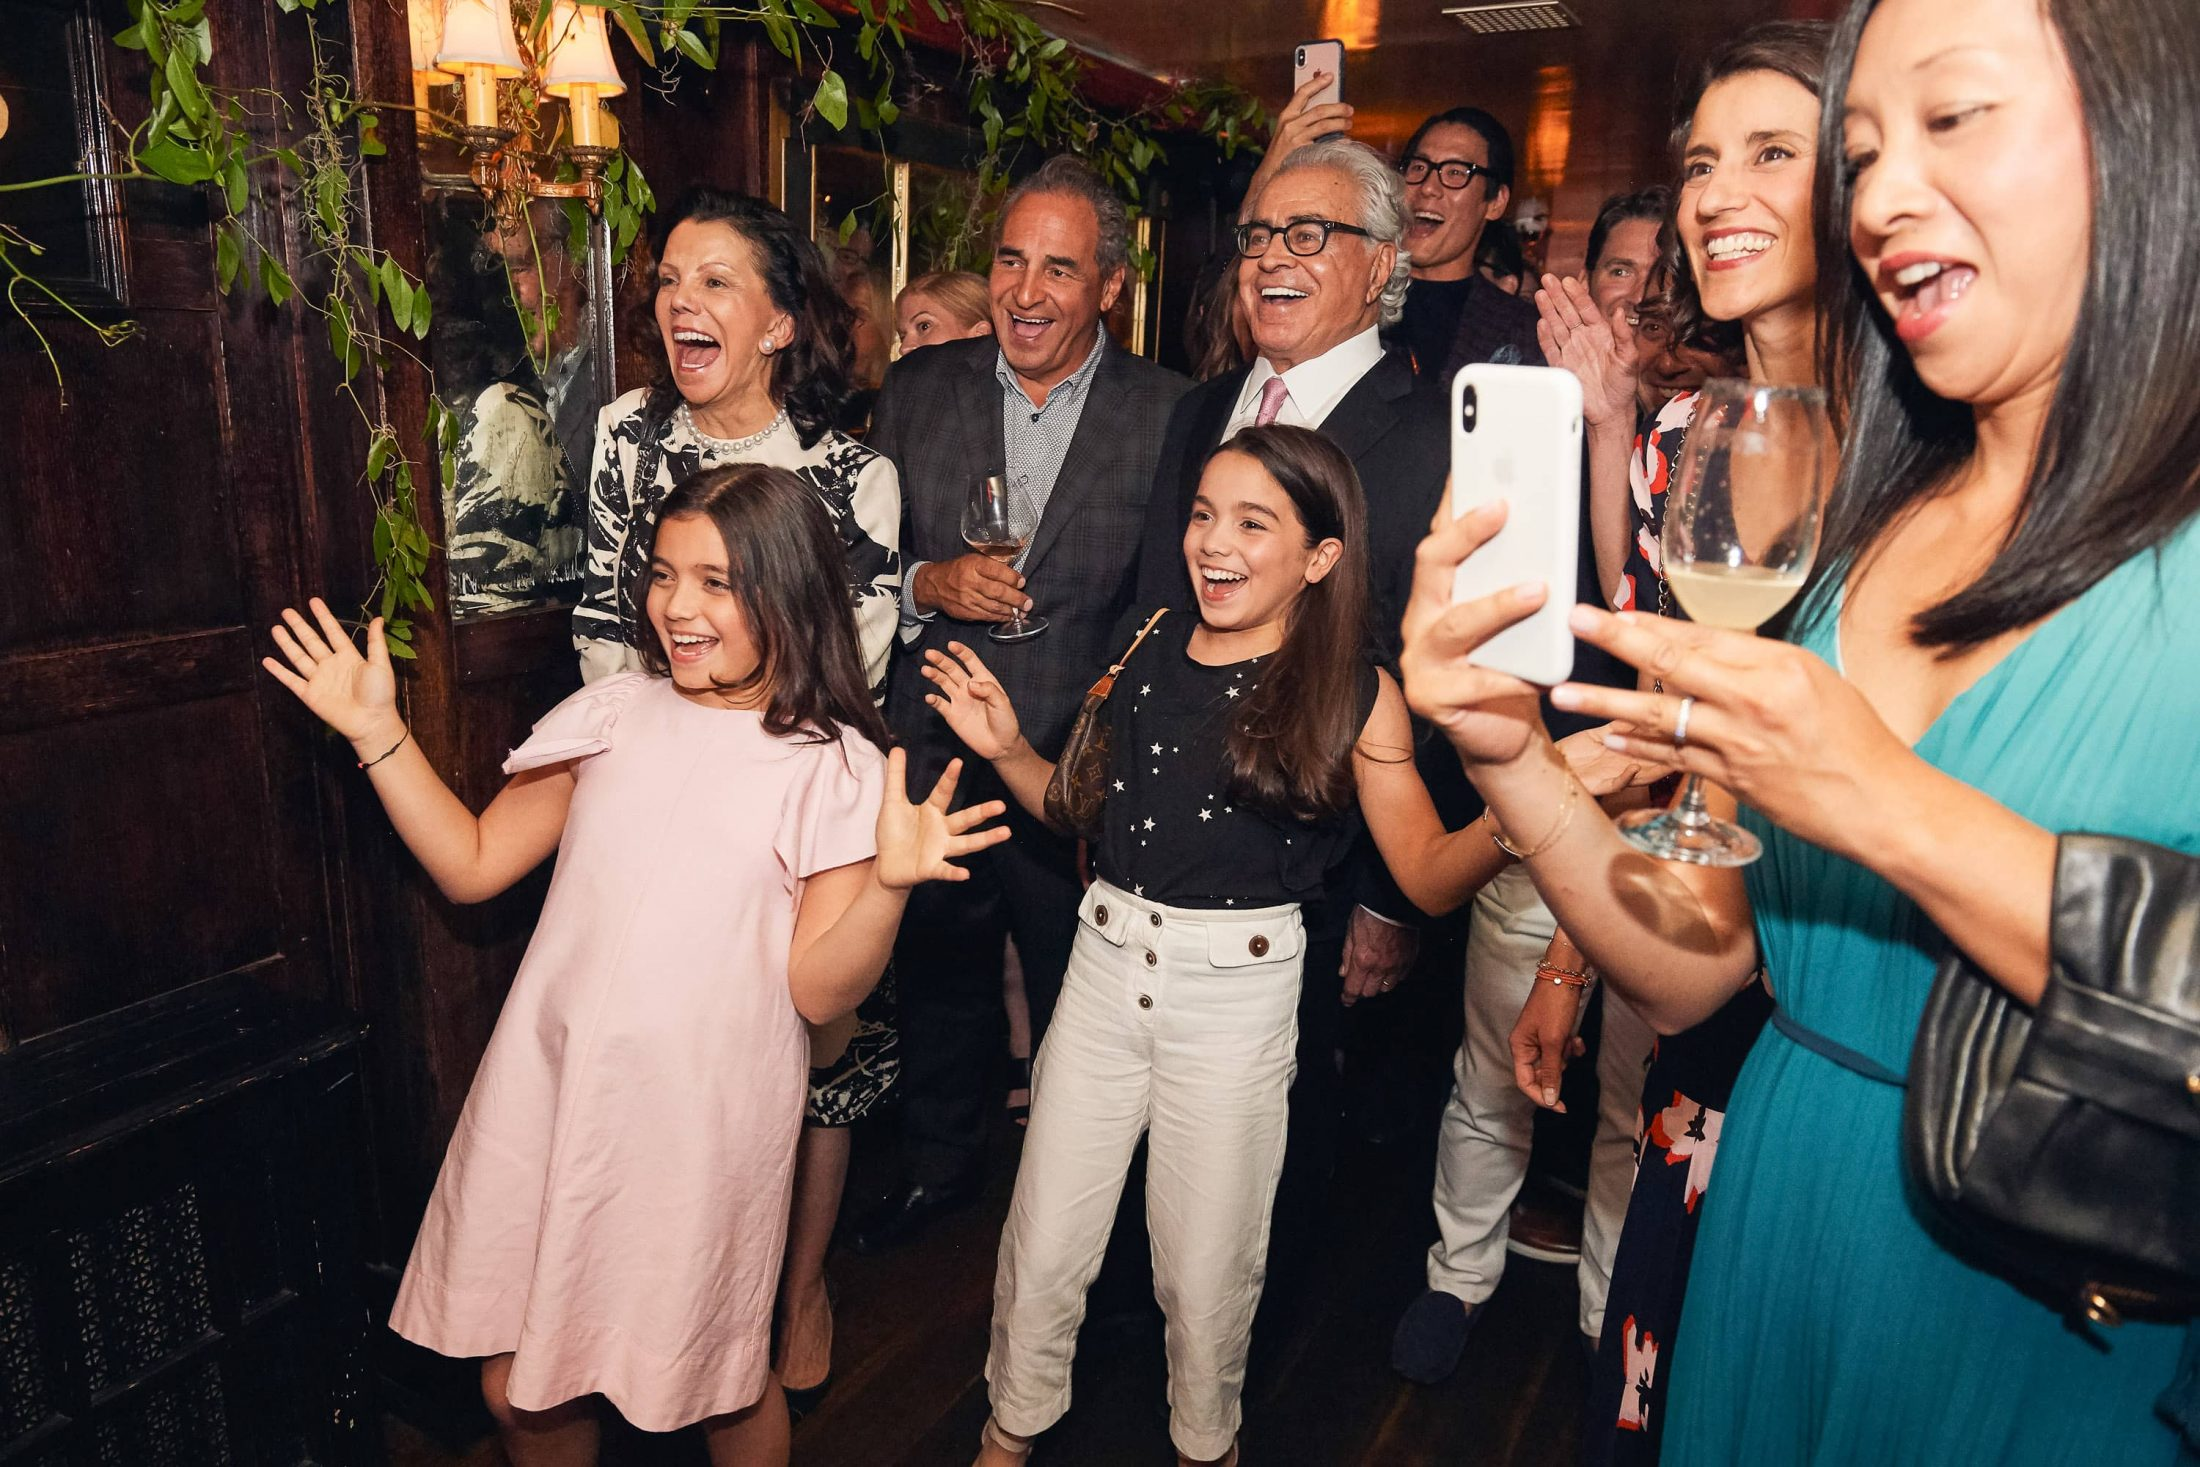 Surprise! Guests at this 40th surprise birthday party at Beatrice Inn in West Village | Photo by Darren Ornitz